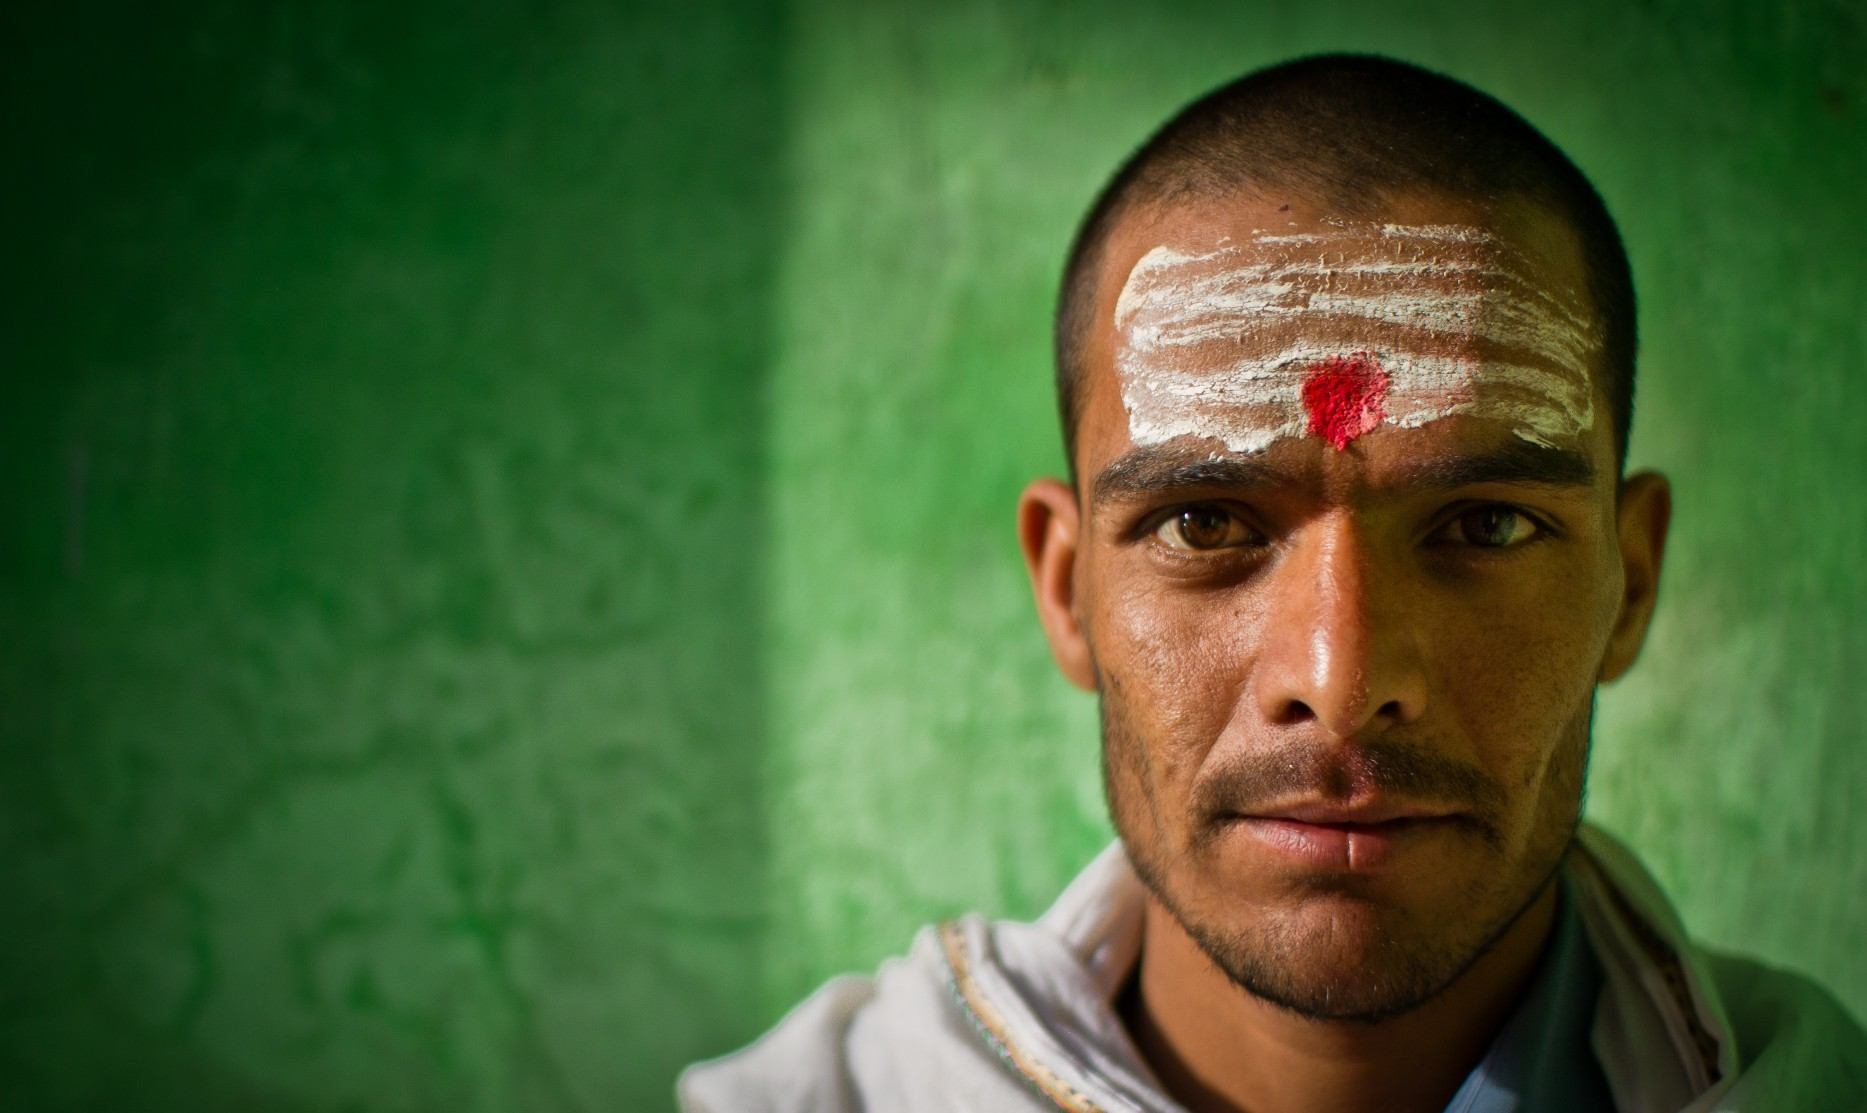 A Nepali Priest in Varanasi, India, Asia photography travel beijing photographer portrait